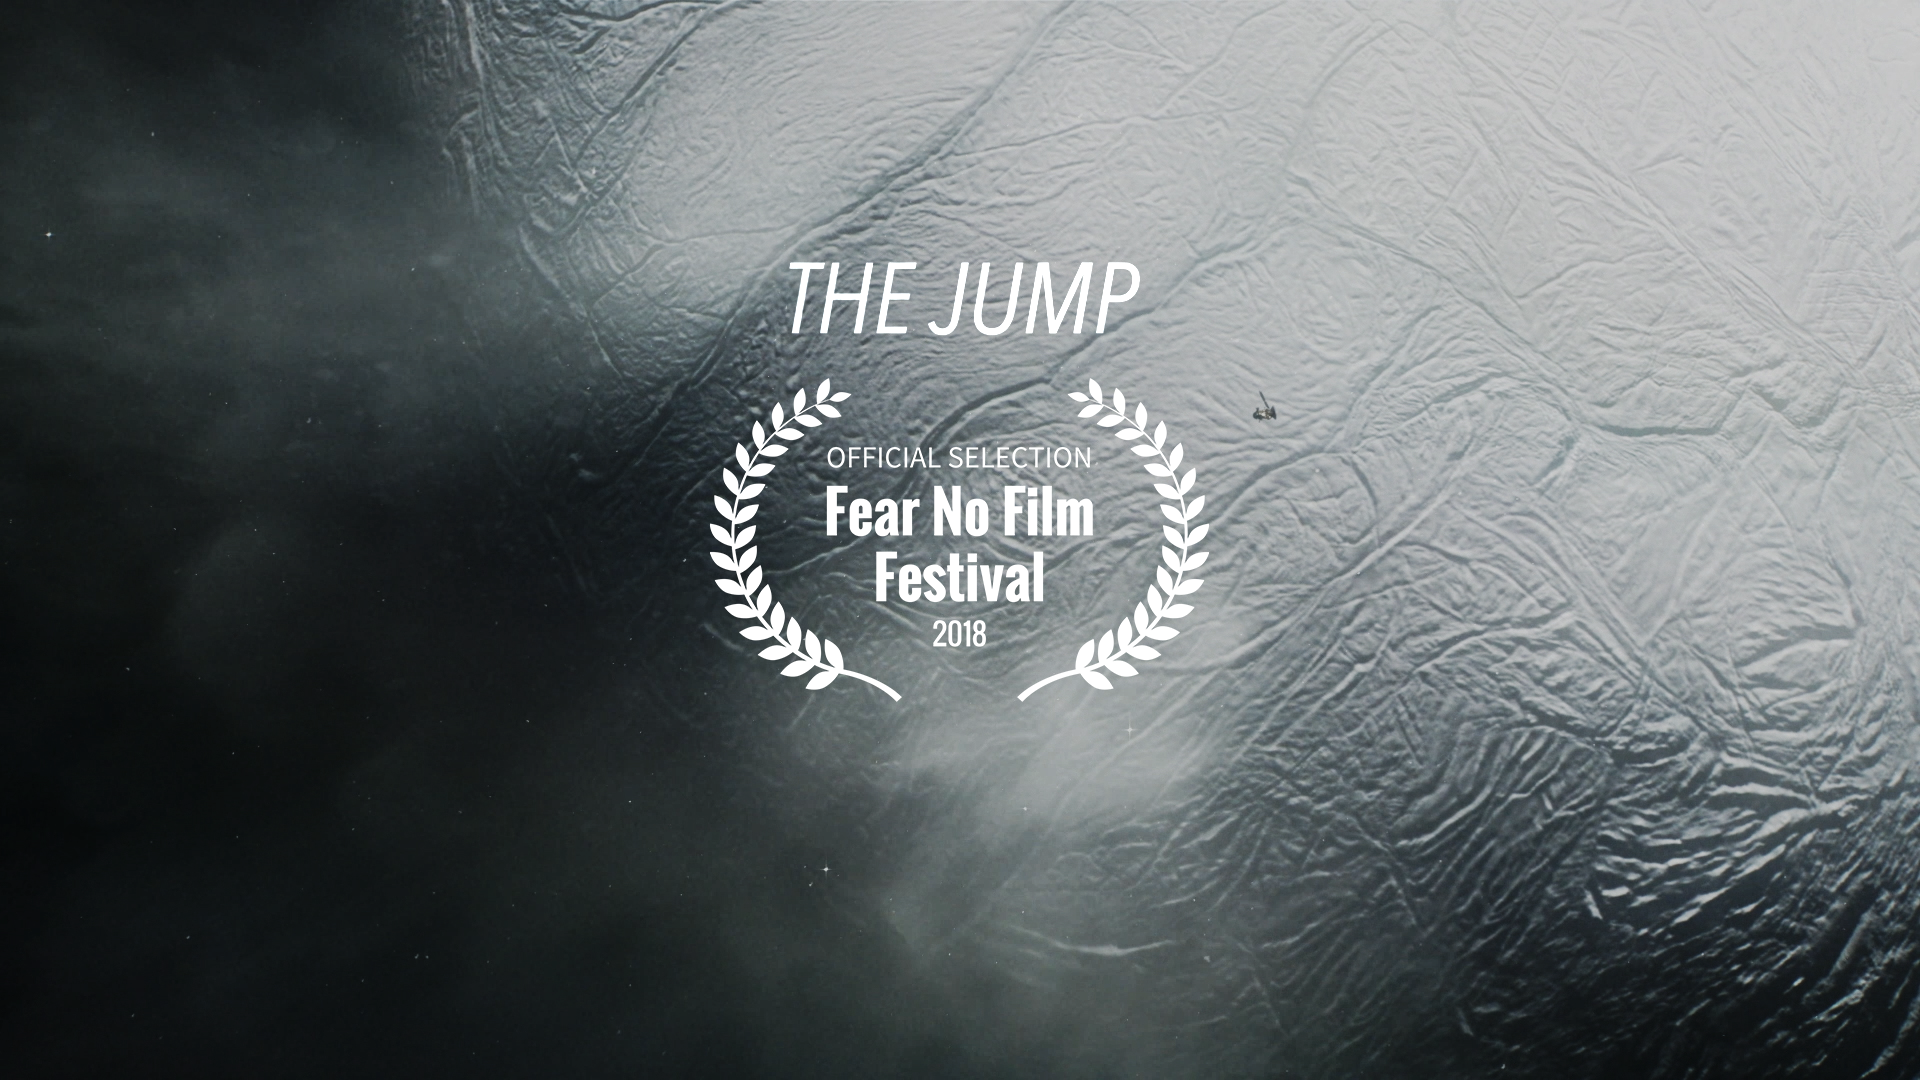 THE JUMP - OFFICIAL SELECTION - Fear No Film Festival - 2018.png